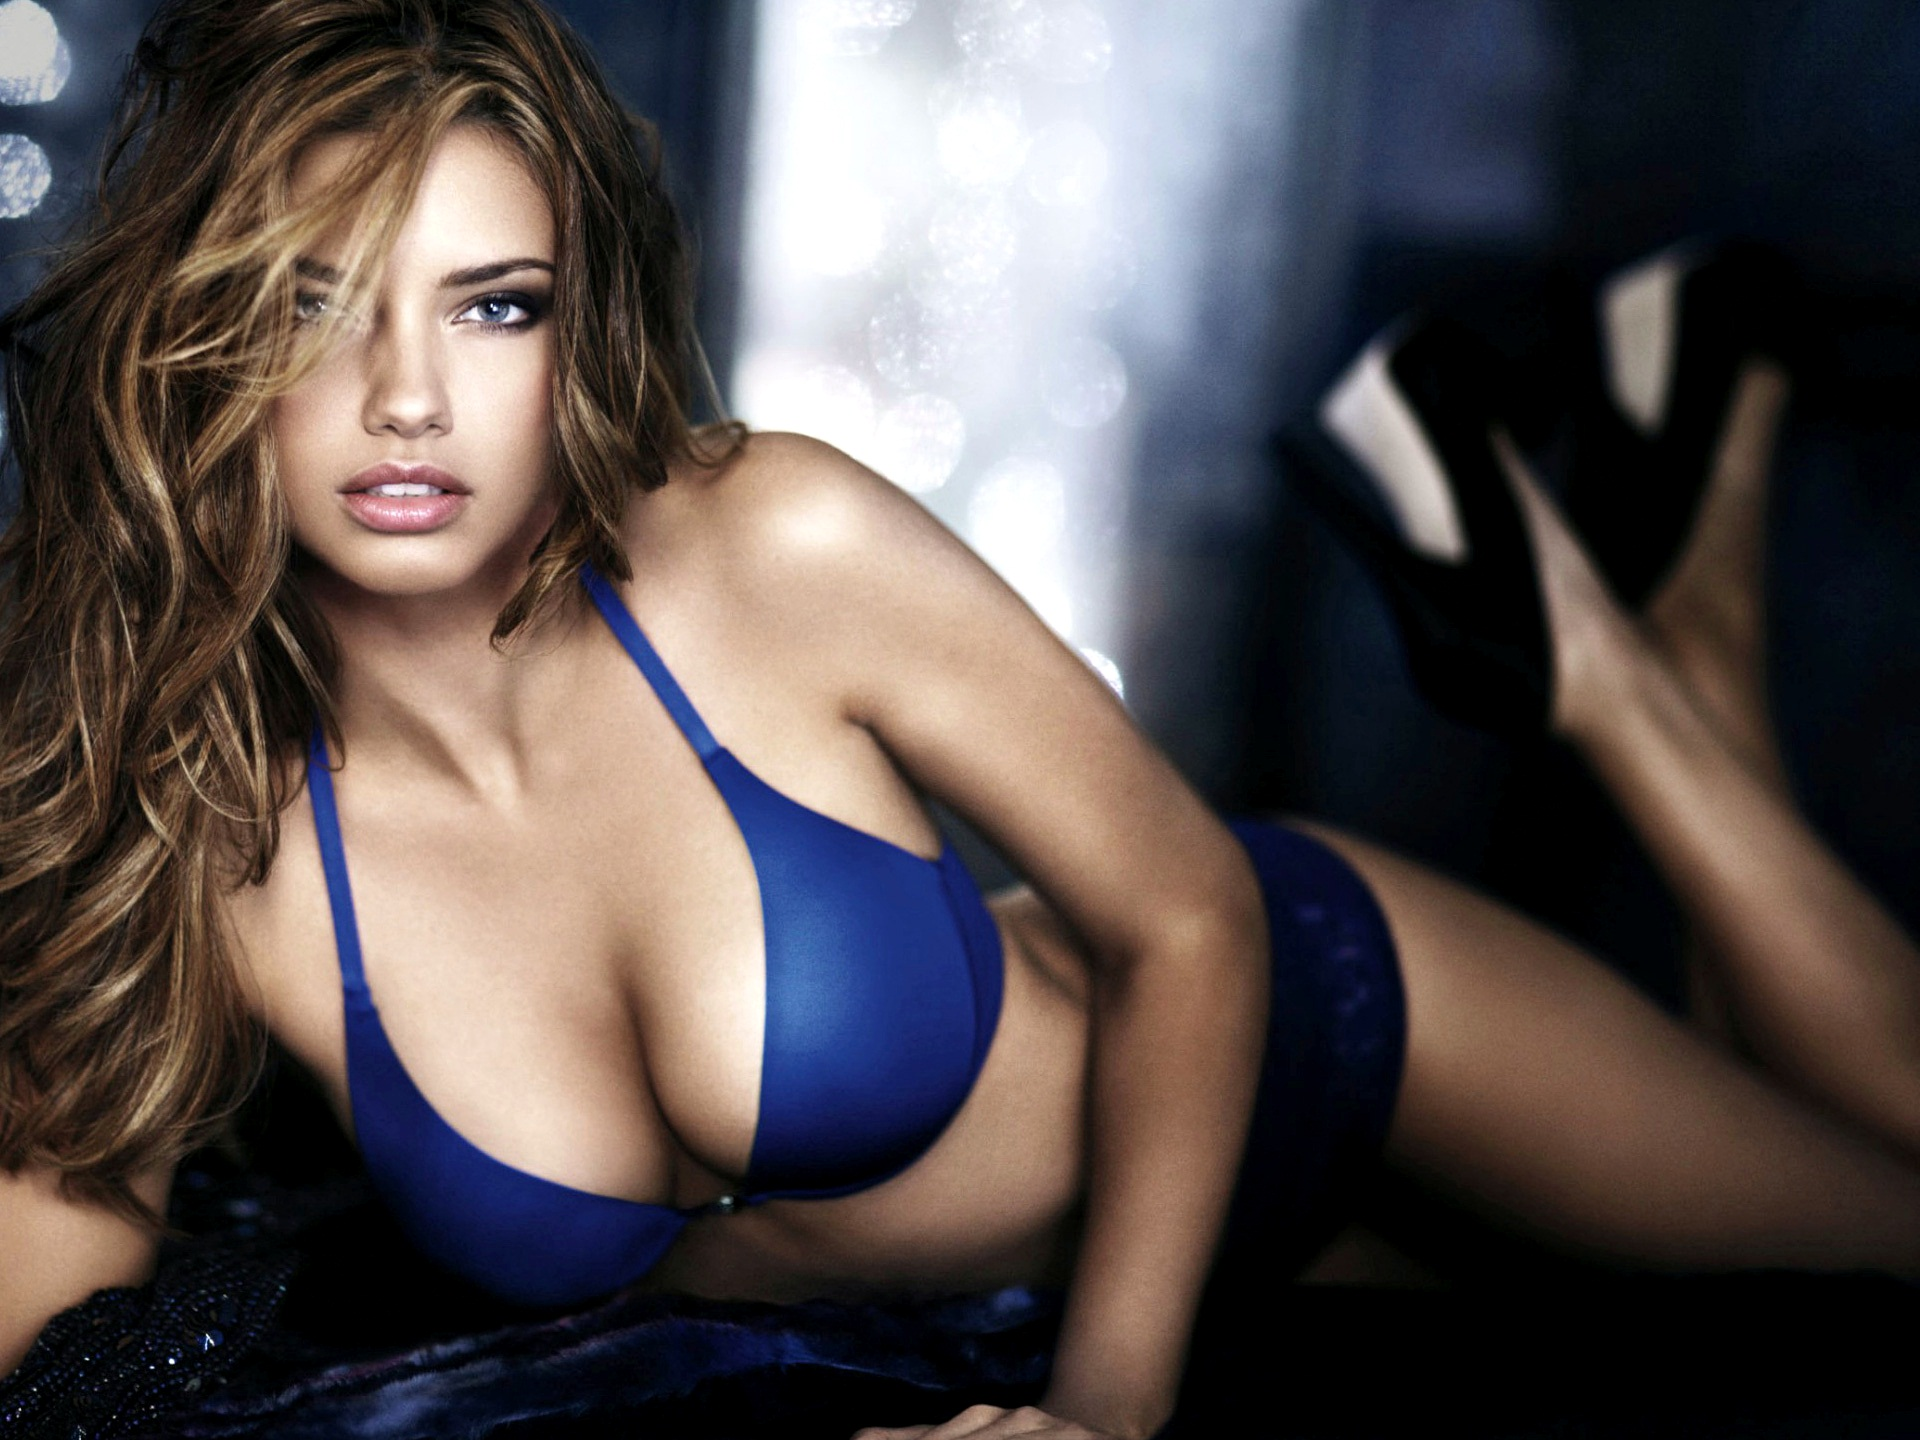 Adriana-Lima-Hot-And-Sexy-Images-1